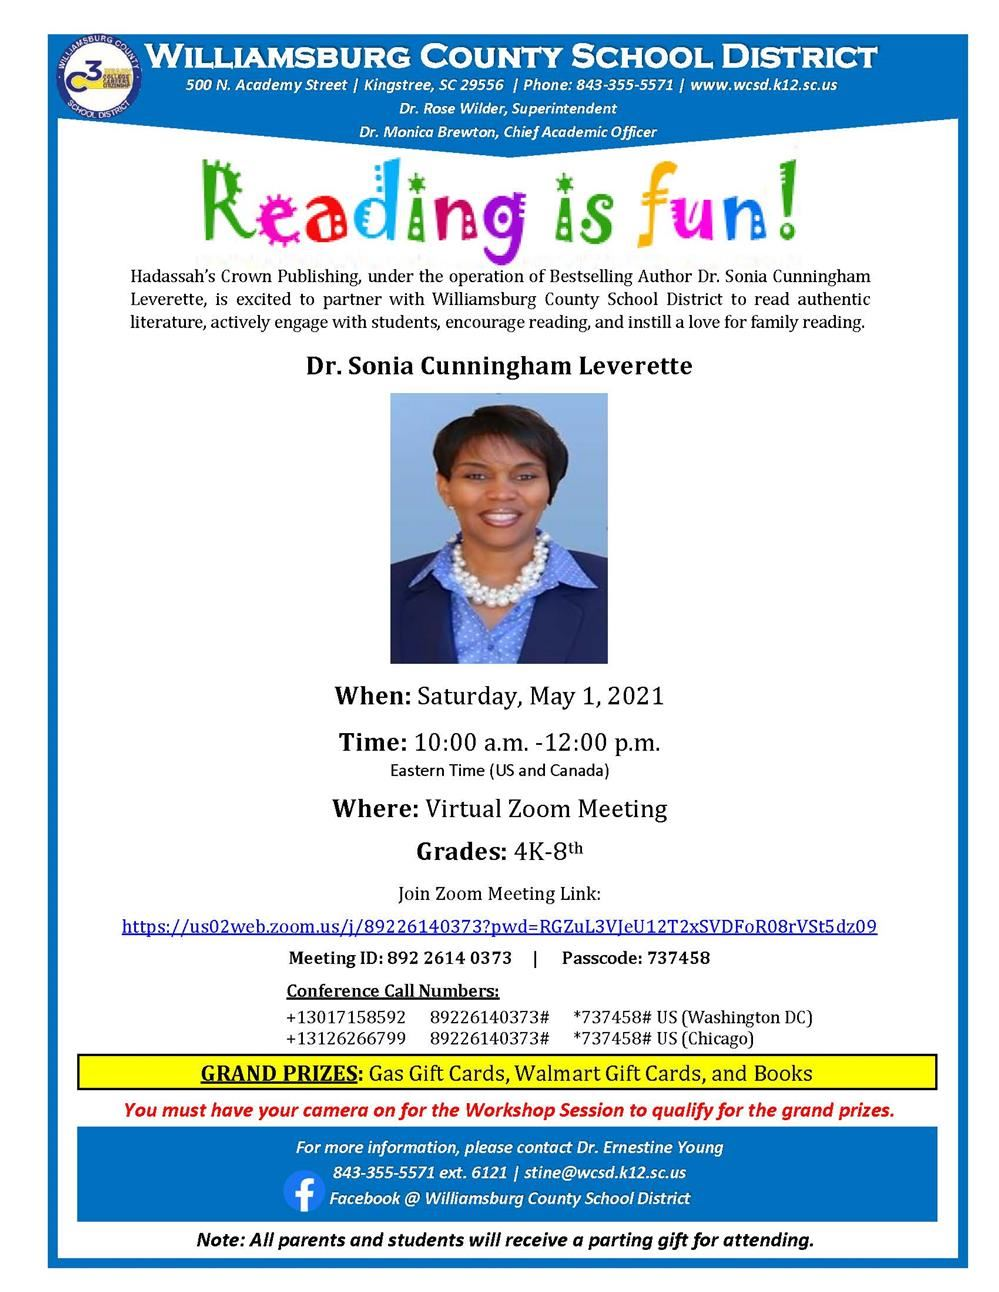 Reading is Fun with Dr. Sonia Cunningham Leverette